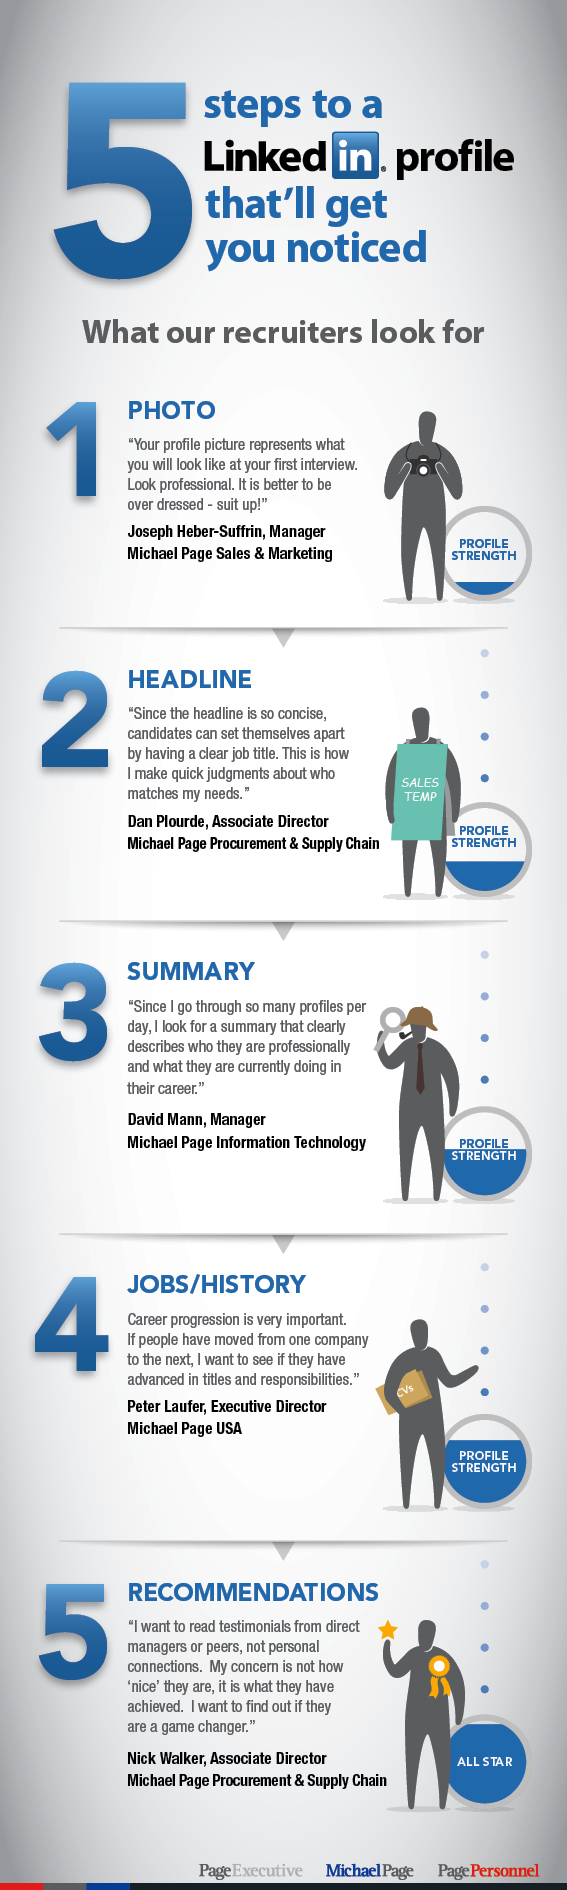 5 Steps To A LinkedIn Profile Thatll Get You Noticed Infographic